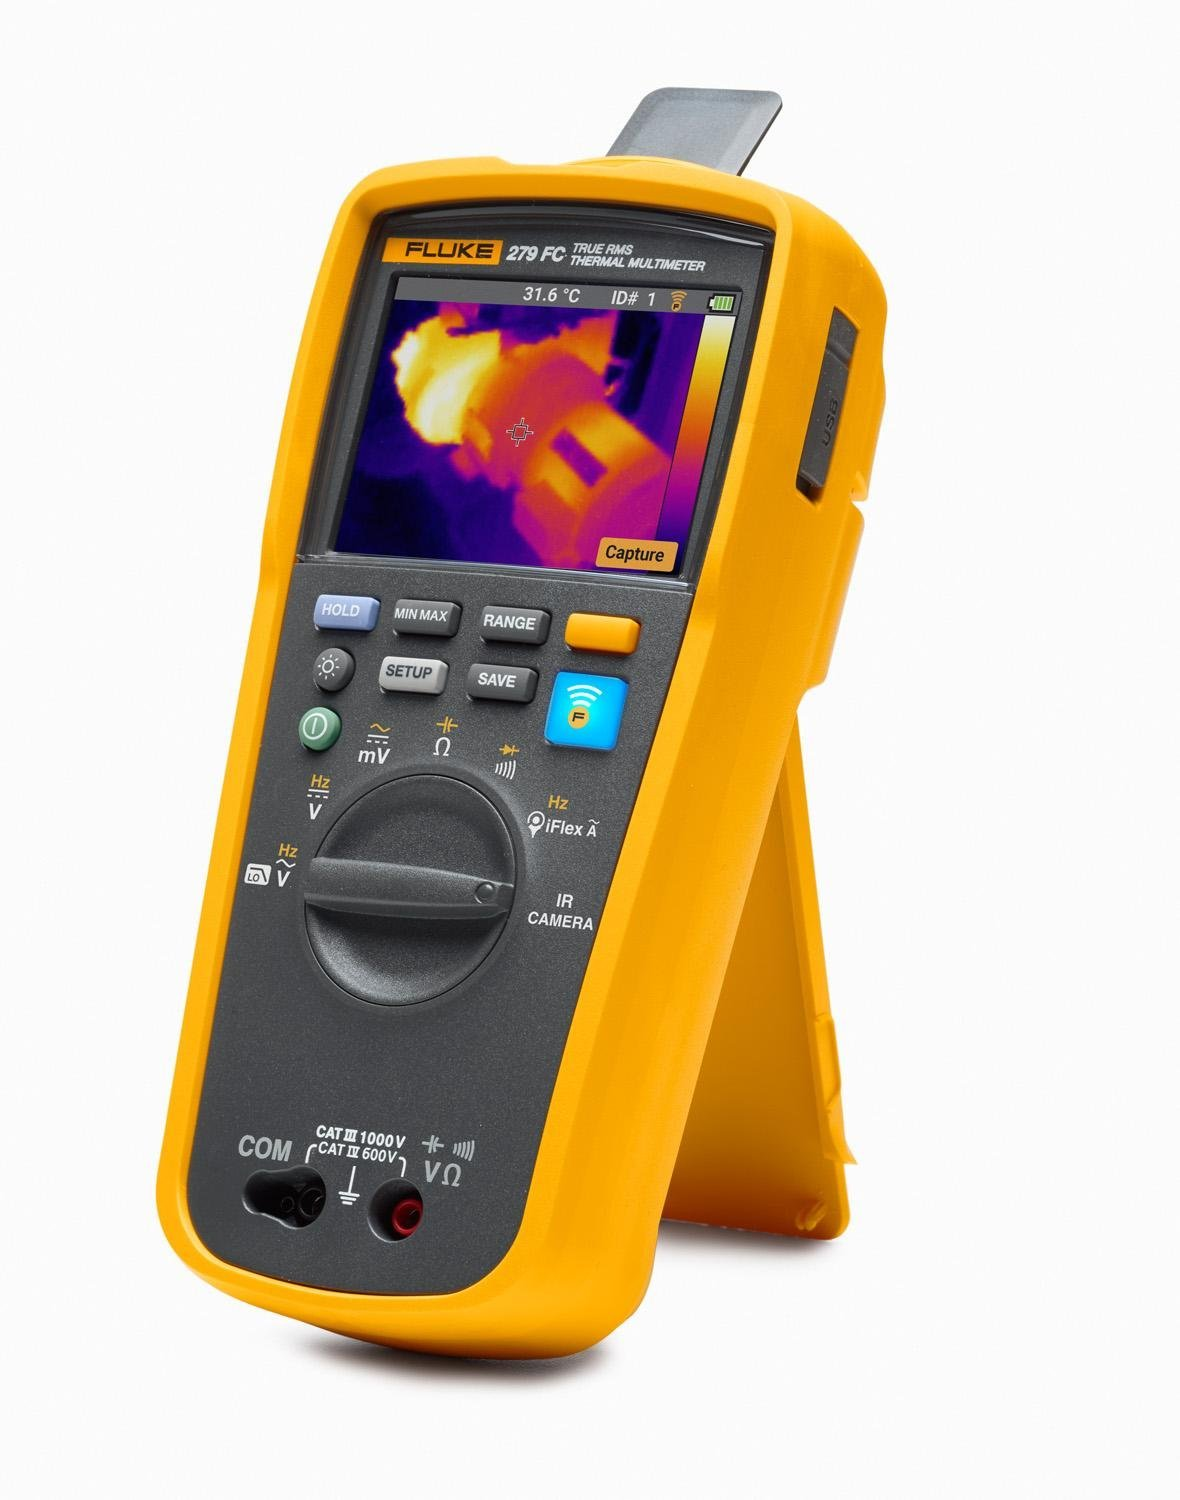 Lithium Ion Battery >> Fluke 279FC Wireless TRMS Thermal Multimeter, Full-Featured Digital with Built-In Thermal Imager ...